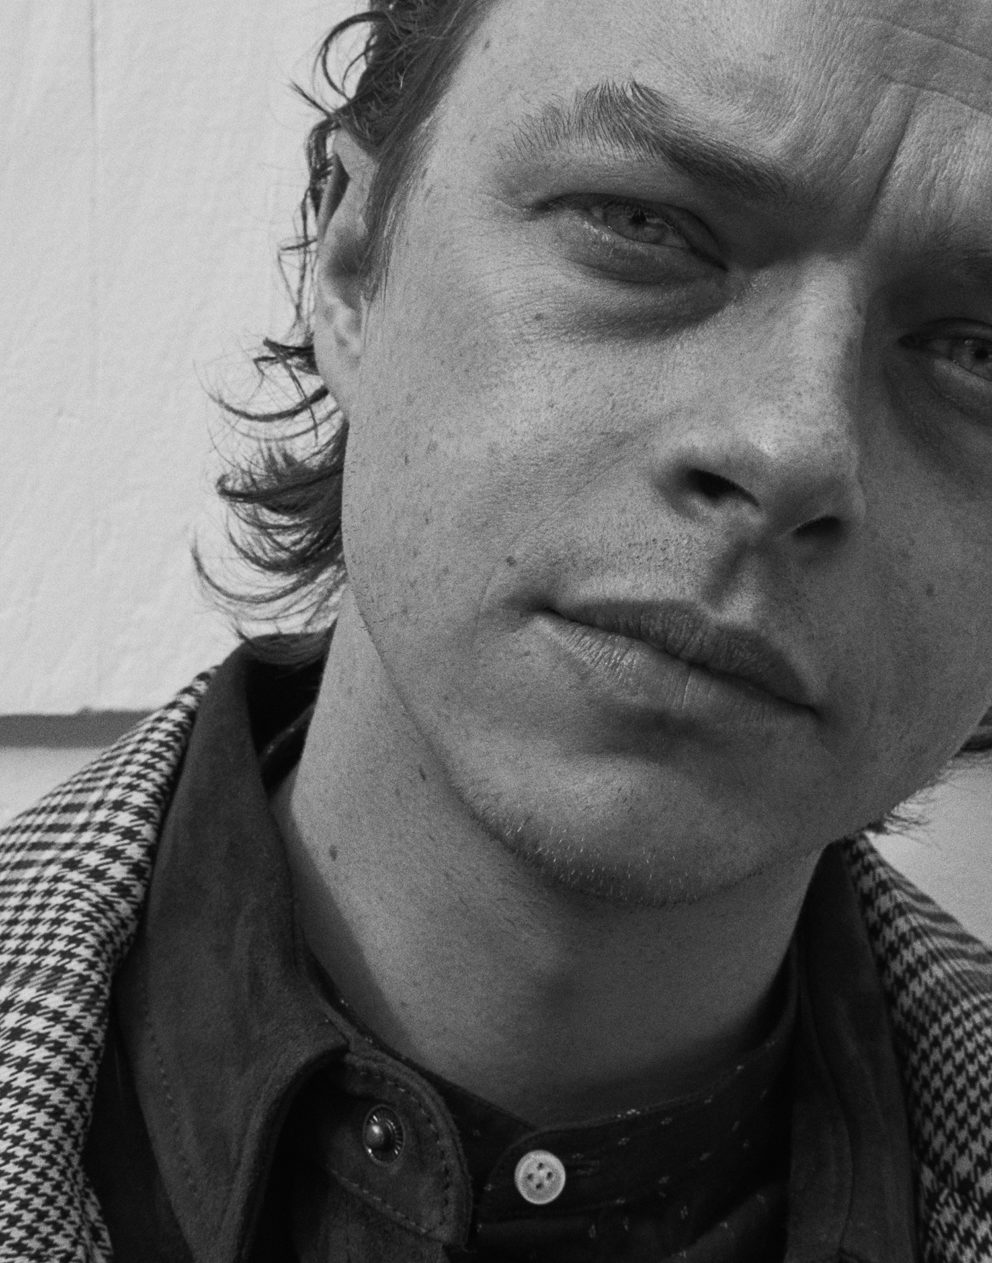 180310 Dane Dehaan By Christian Hogstedt 01